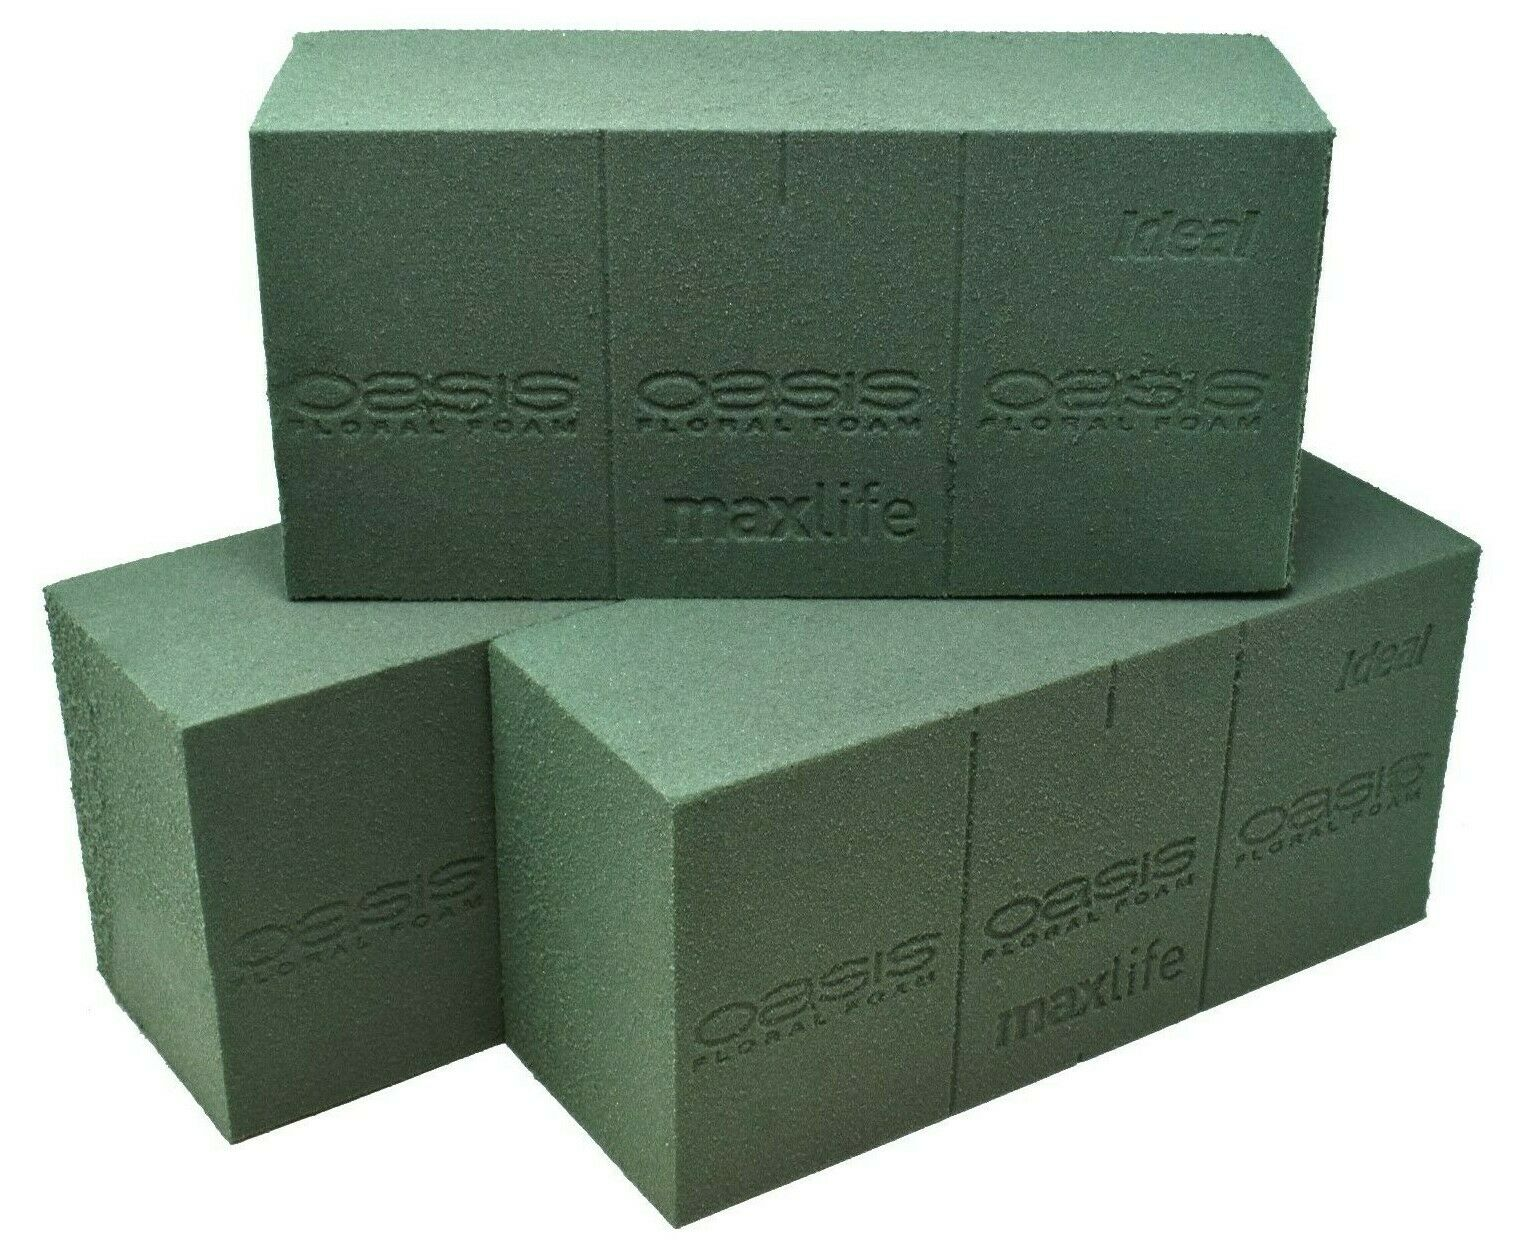 2 x Genuine Smithers Oasis Ideal Floral Foam Wet Brick or Block